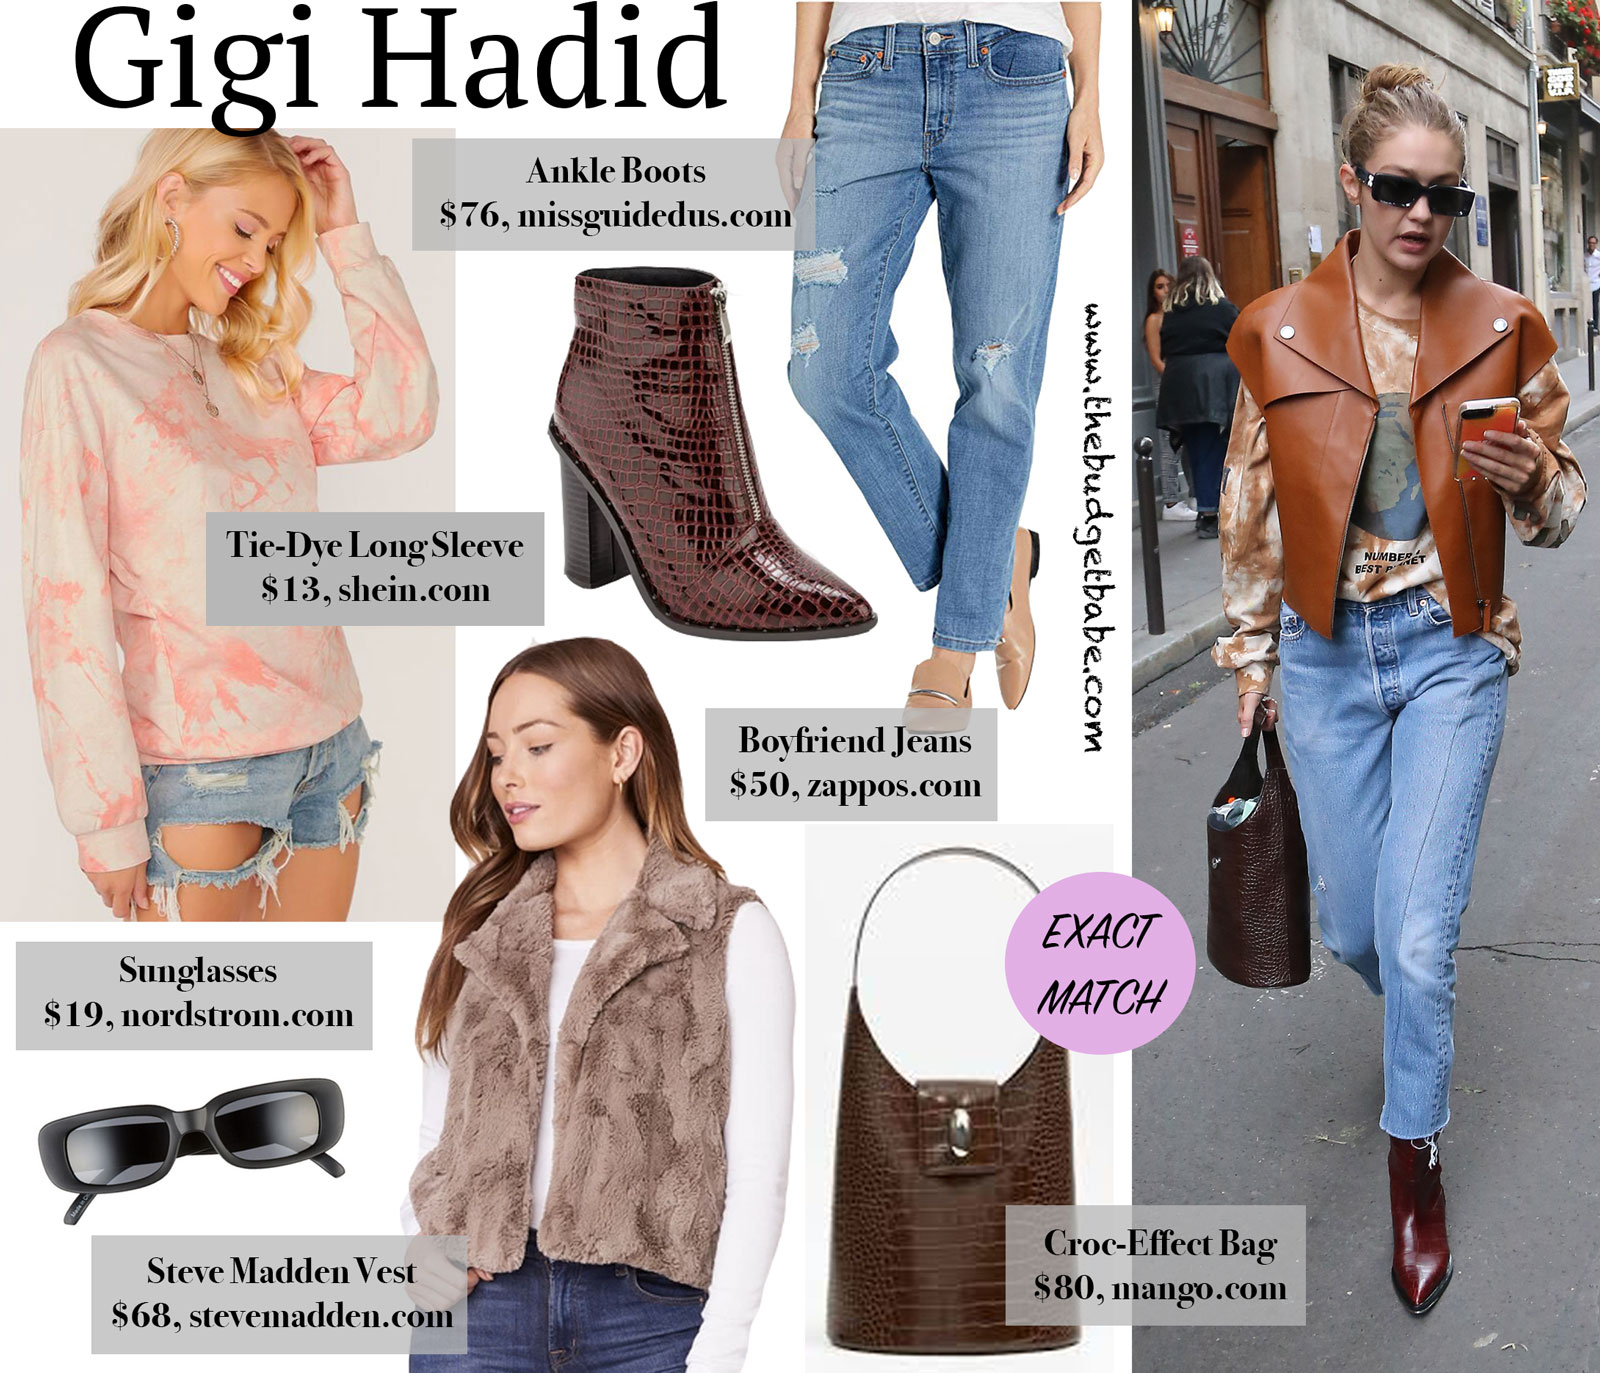 Gigi Hadid Vest and Mango Bag Look for Less